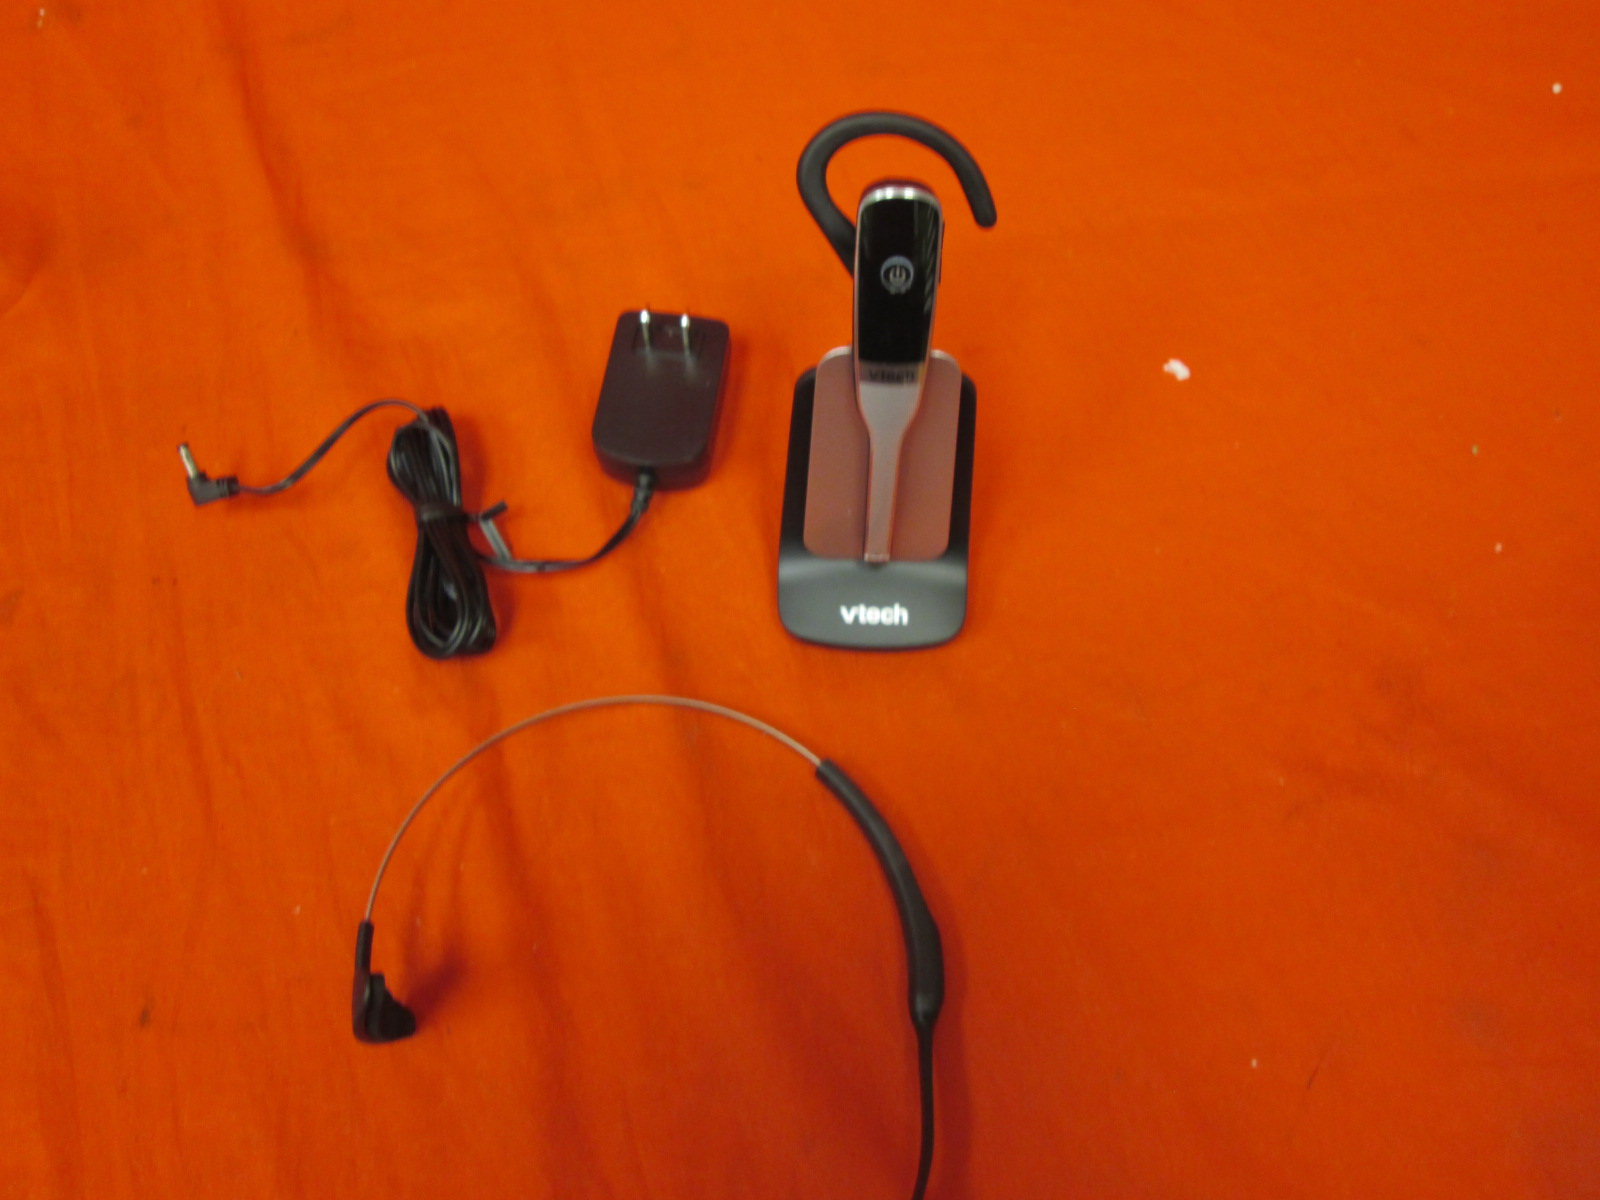 Vtech IS6100 DECT 6.0 Cordless Headset Silver/black 1 Accessory